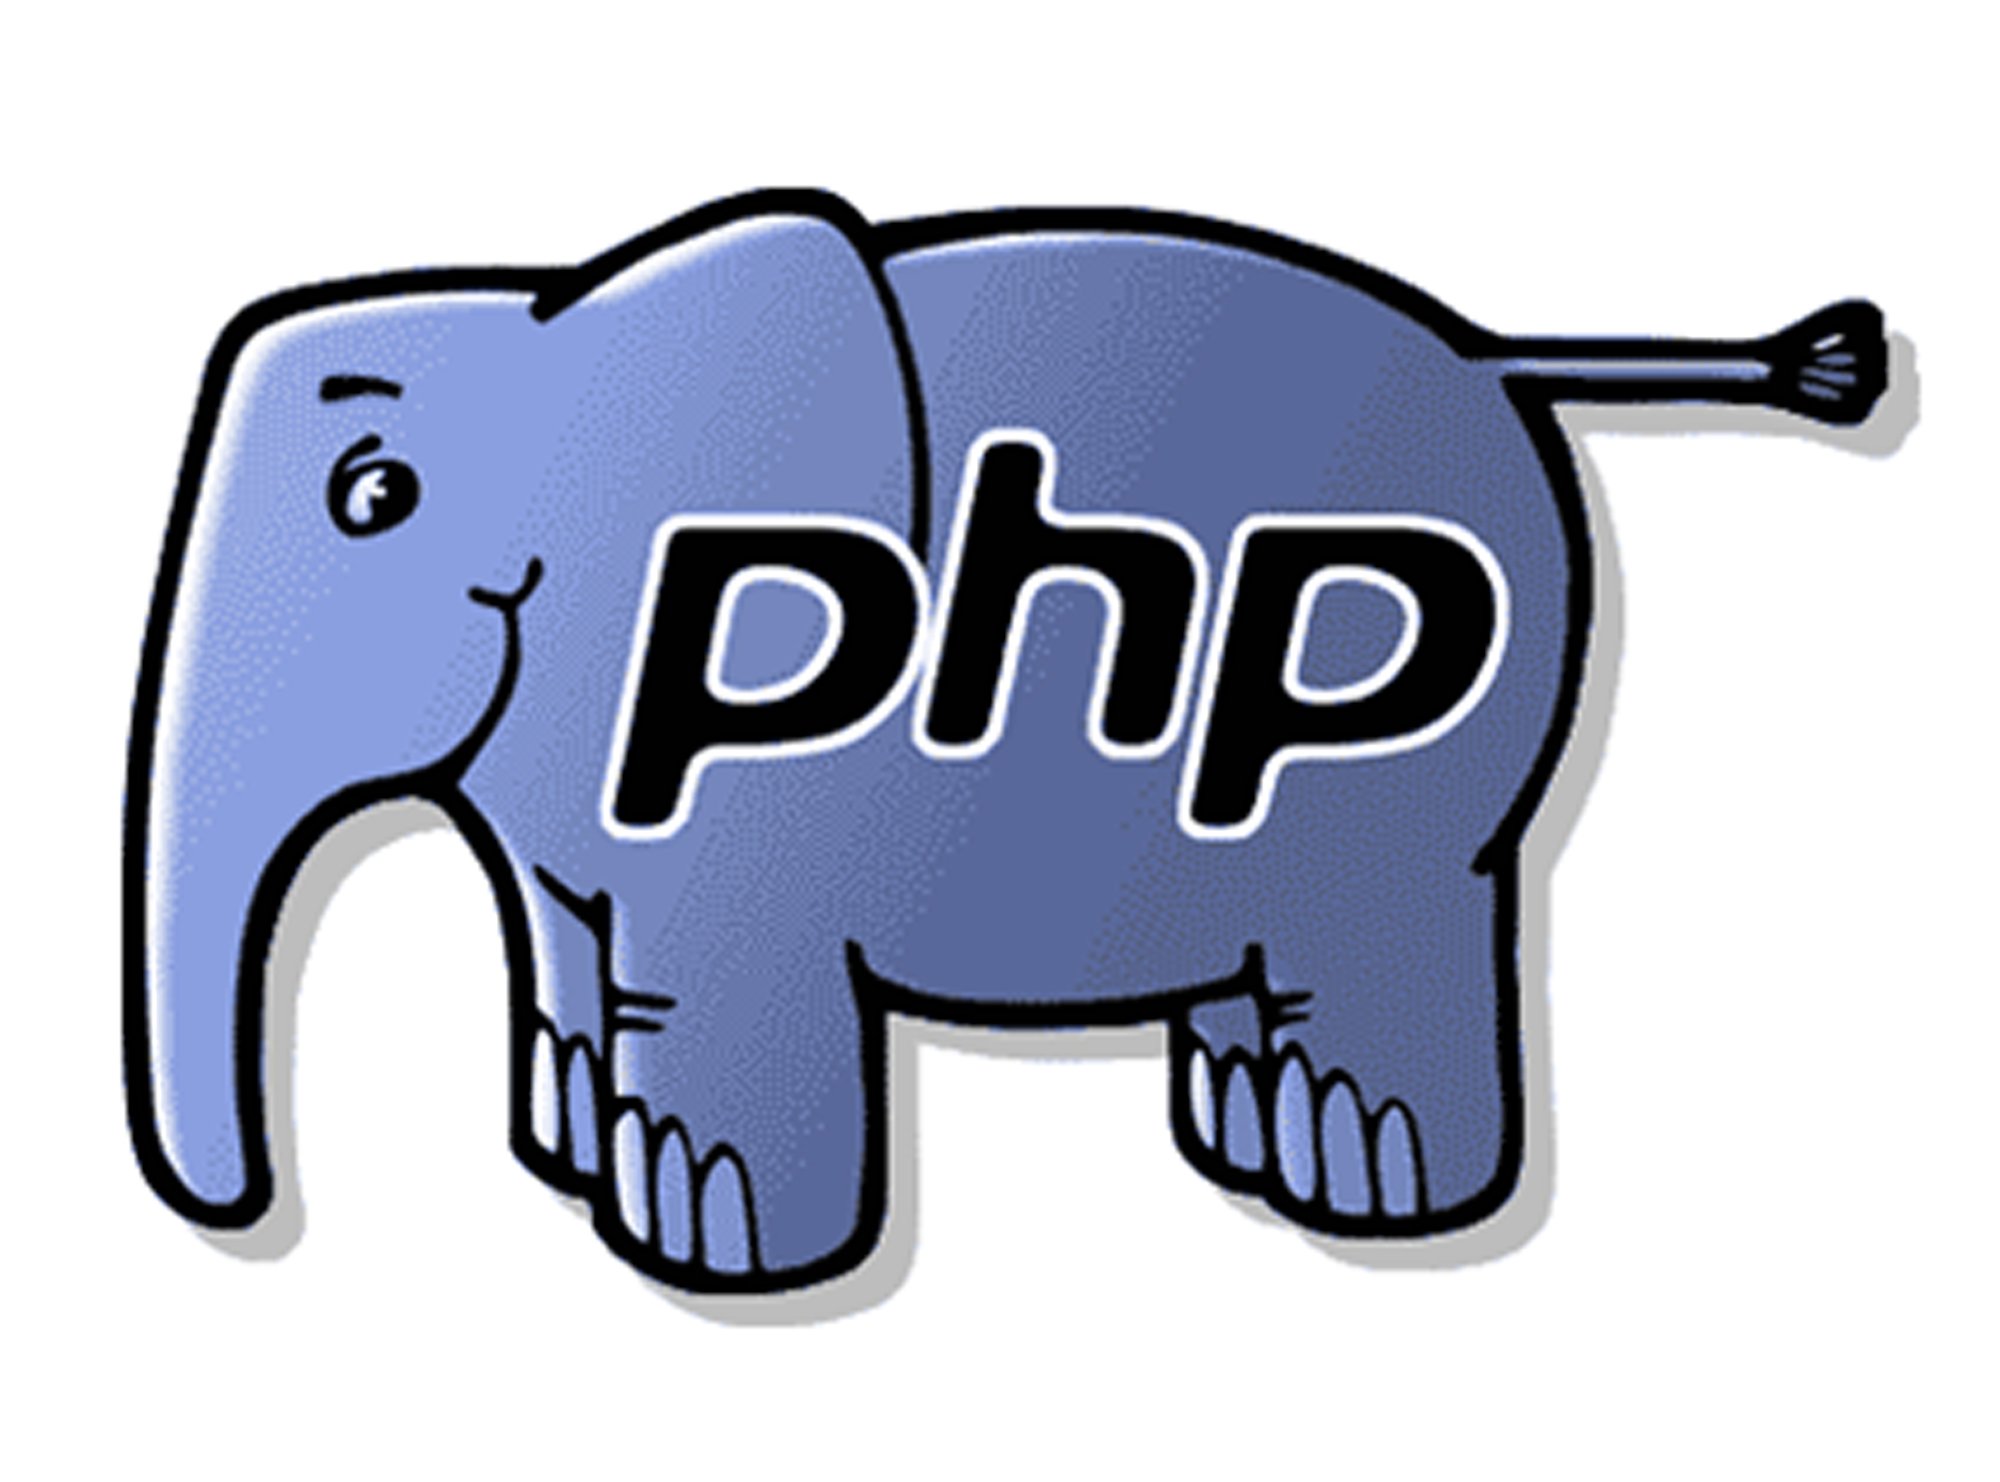 The HTML Embedded Language : PHP - Image 1